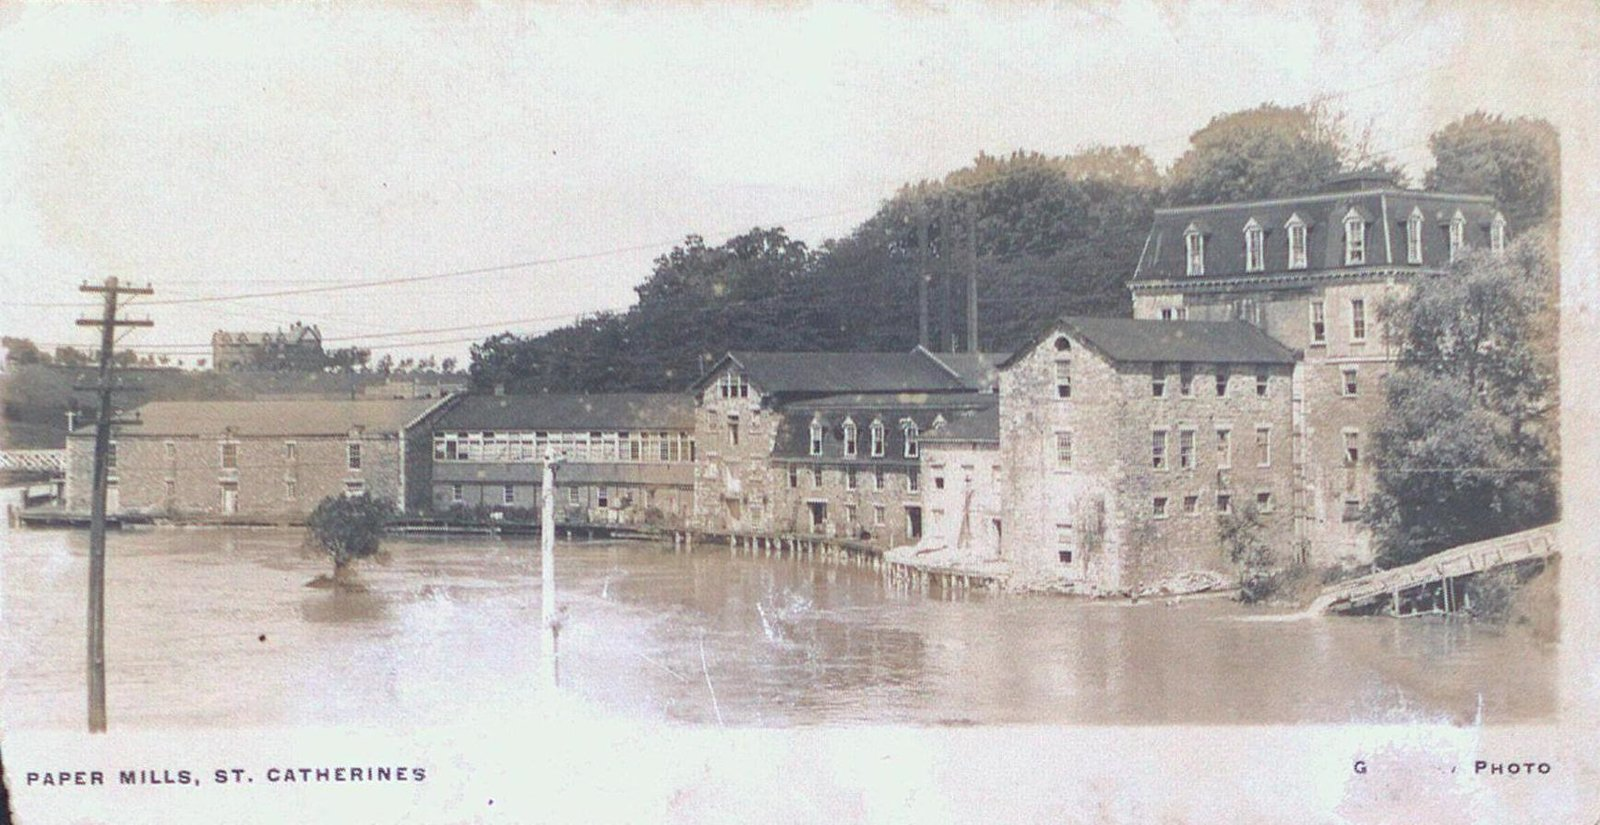 Paper Mills, St. Catharines